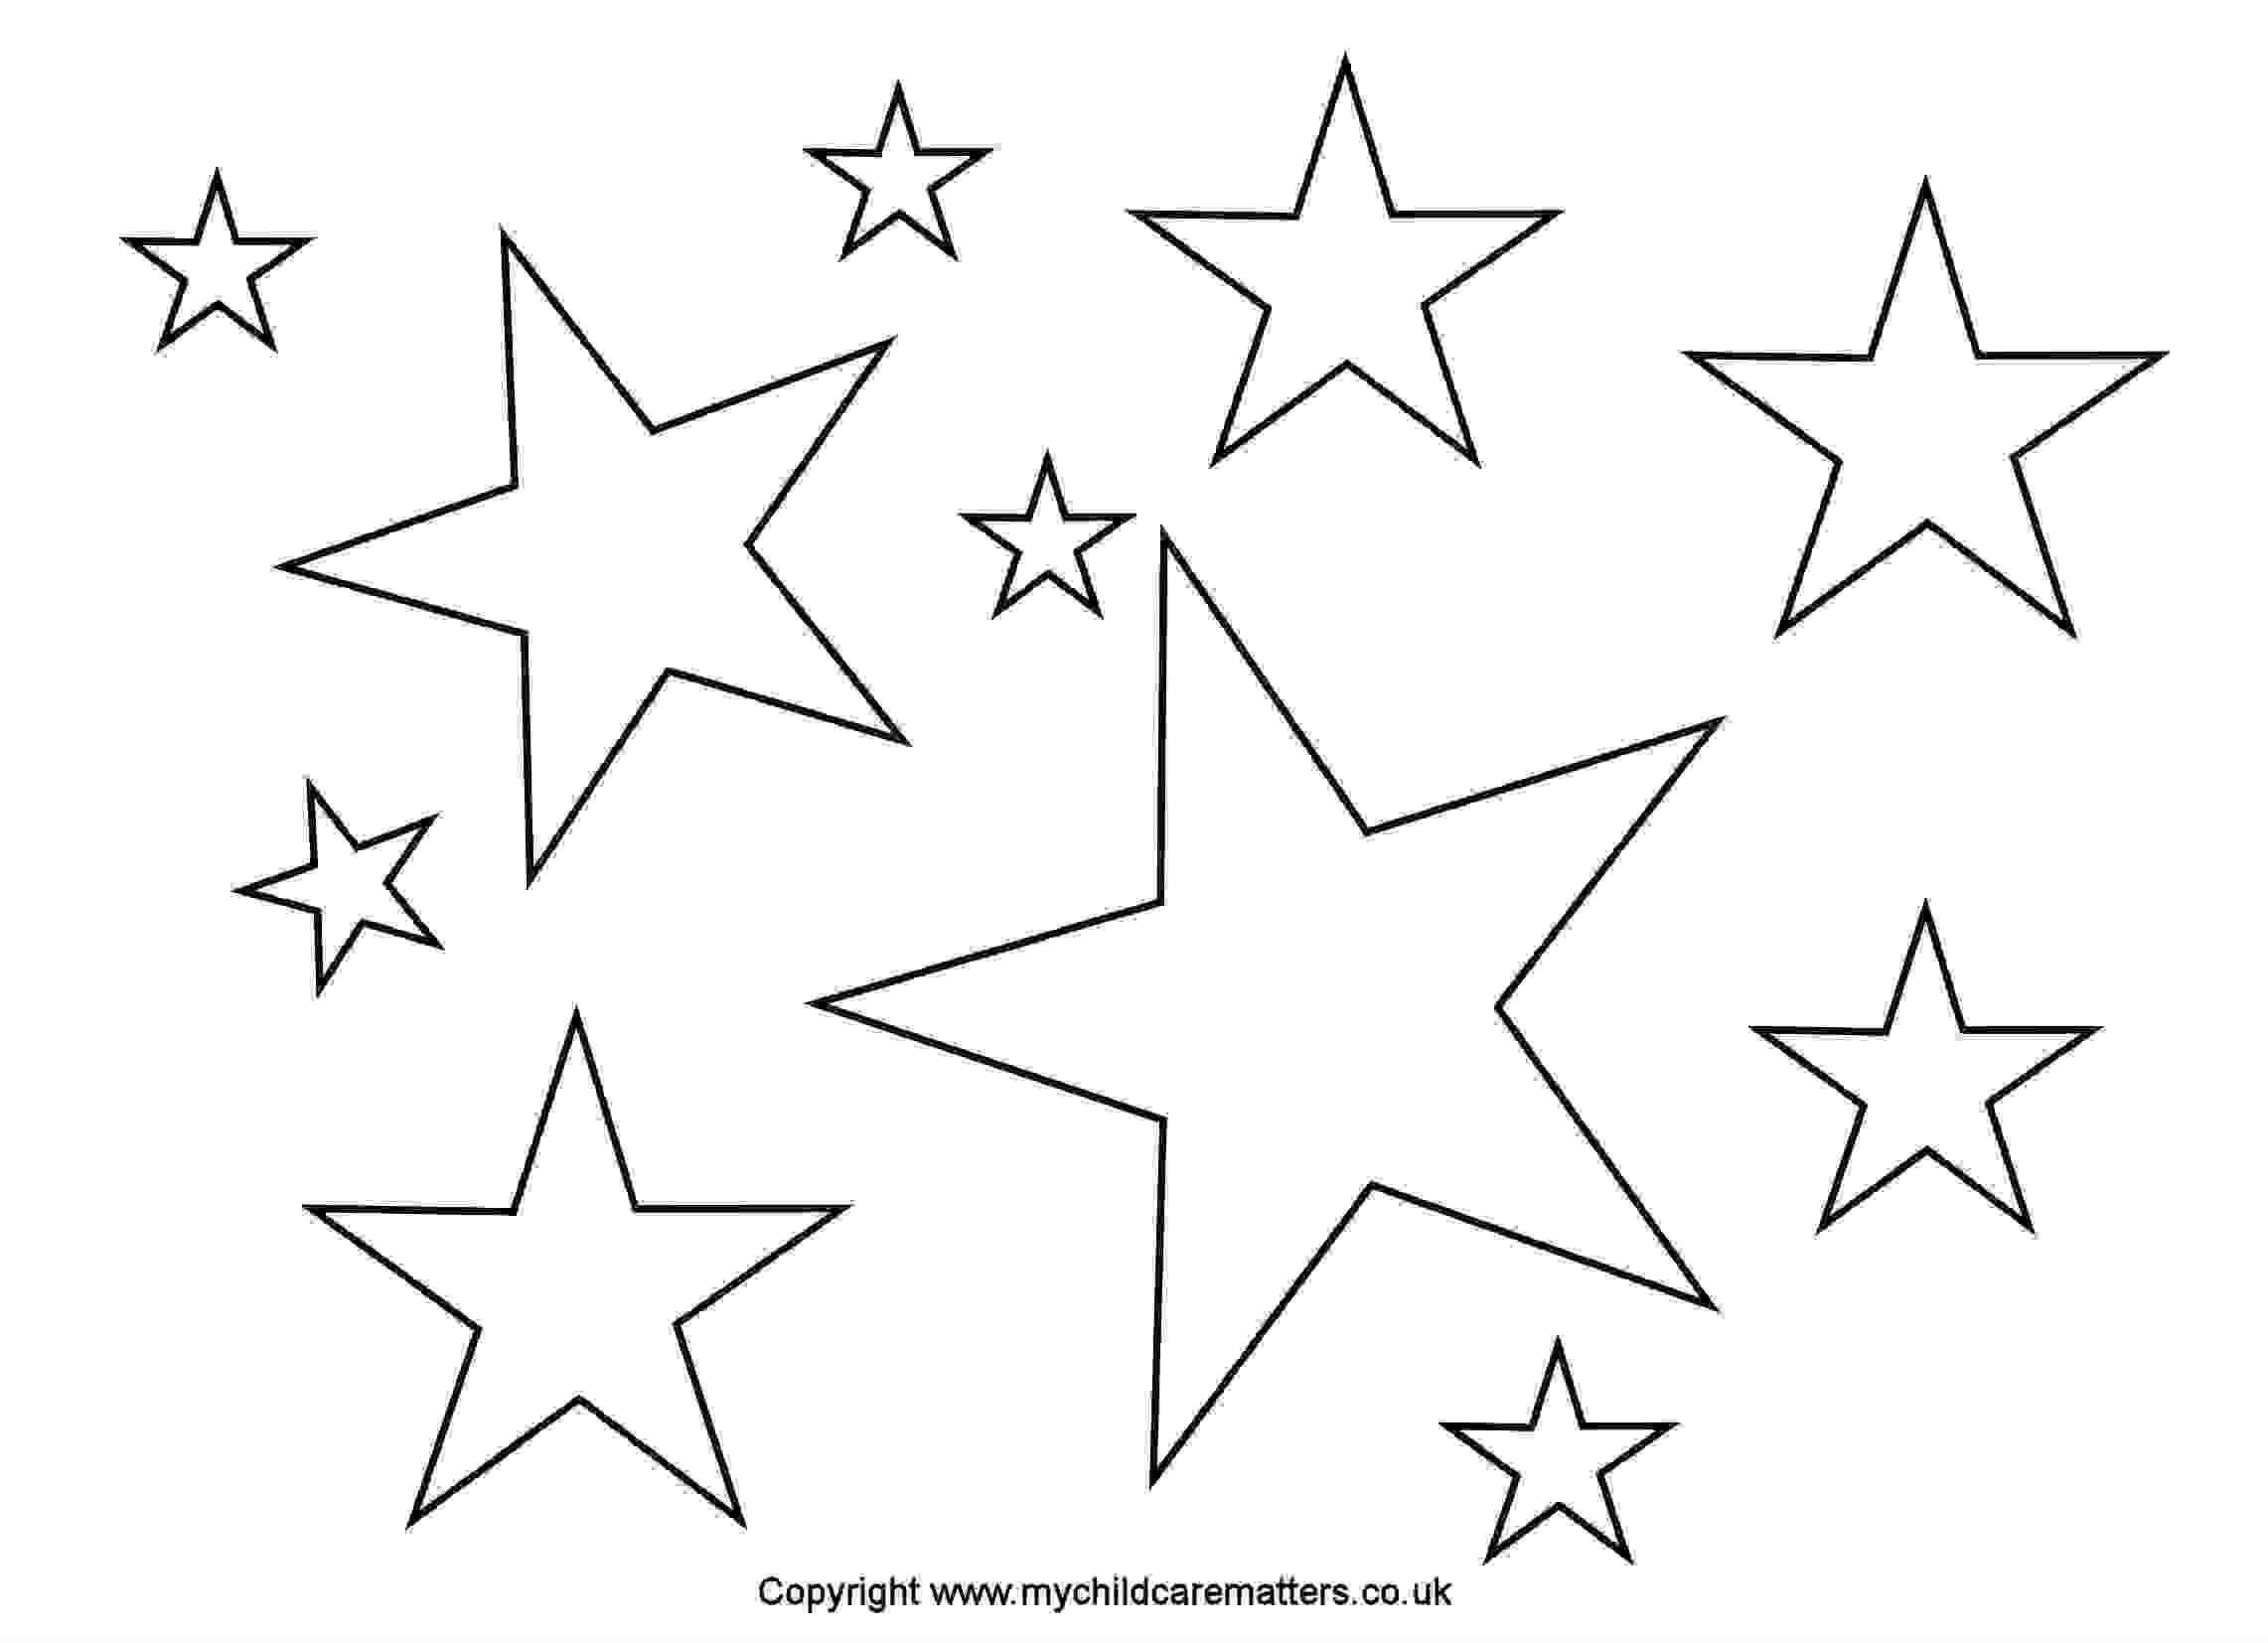 Star Outline Images 1 Inch Star Pattern Use The Printable